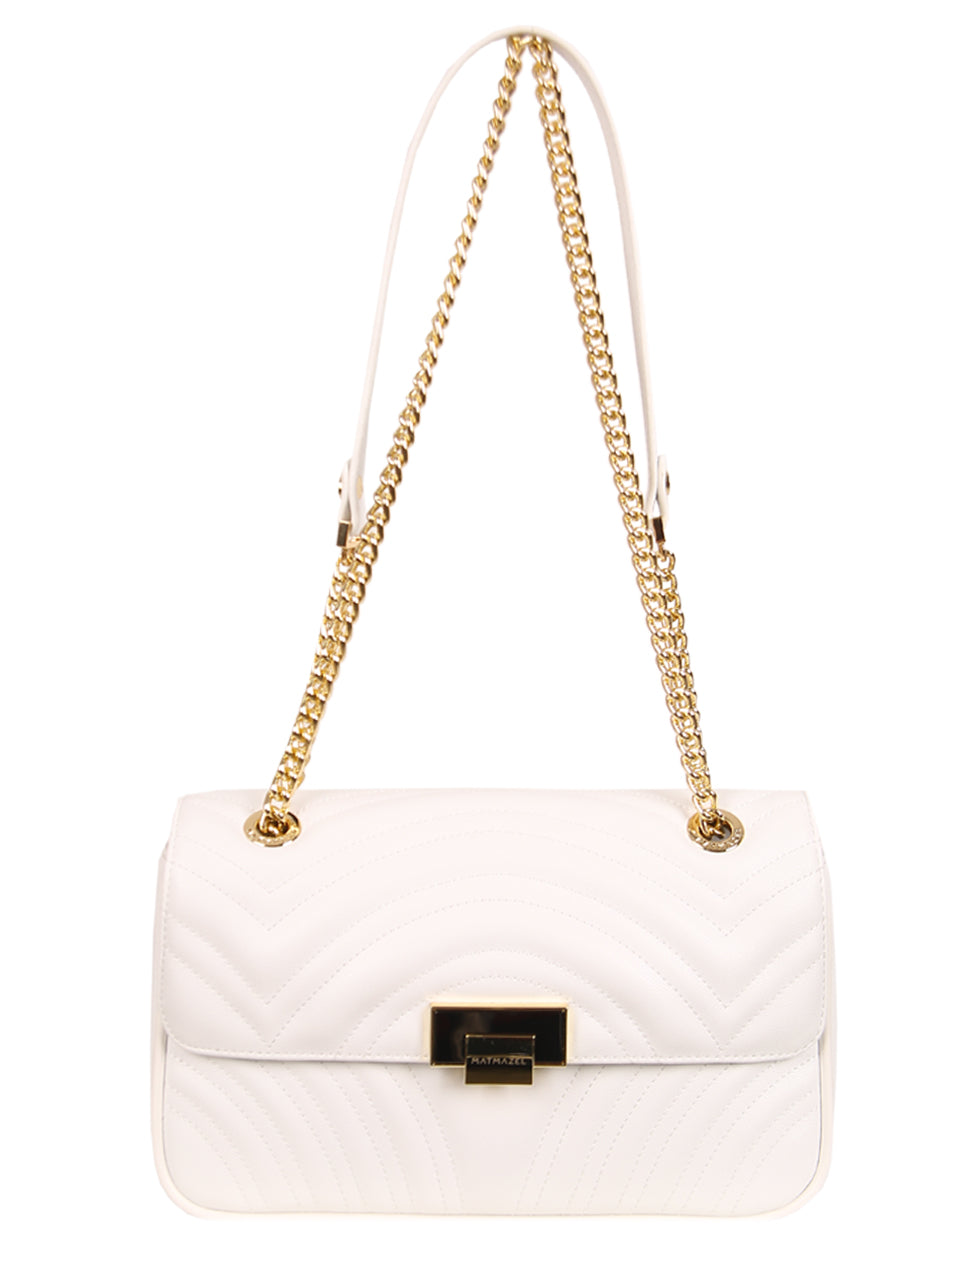 Mademoiselle Happy Shoulder Bag - White